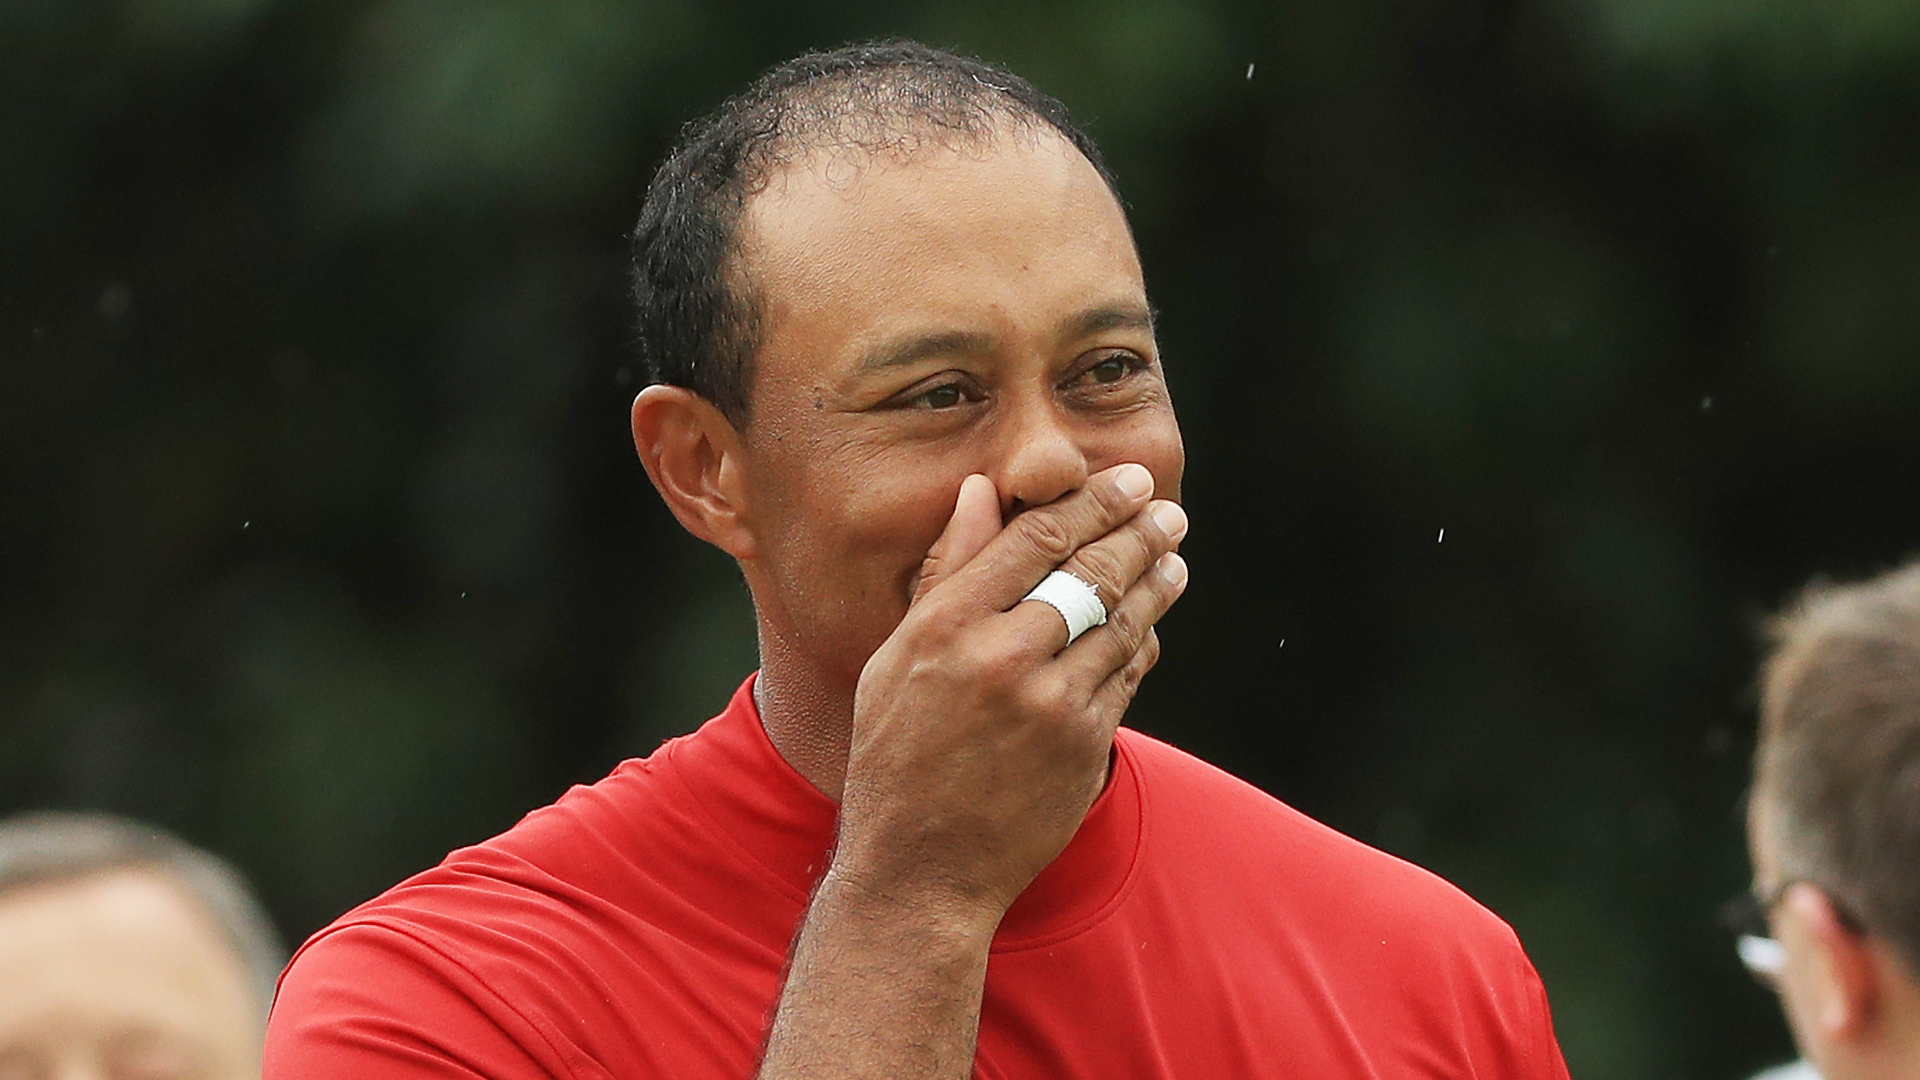 It was on May 29, 2017 that Tiger Woods reached a very public nadir, as Stats Perform News' Russell Greaves recalls.